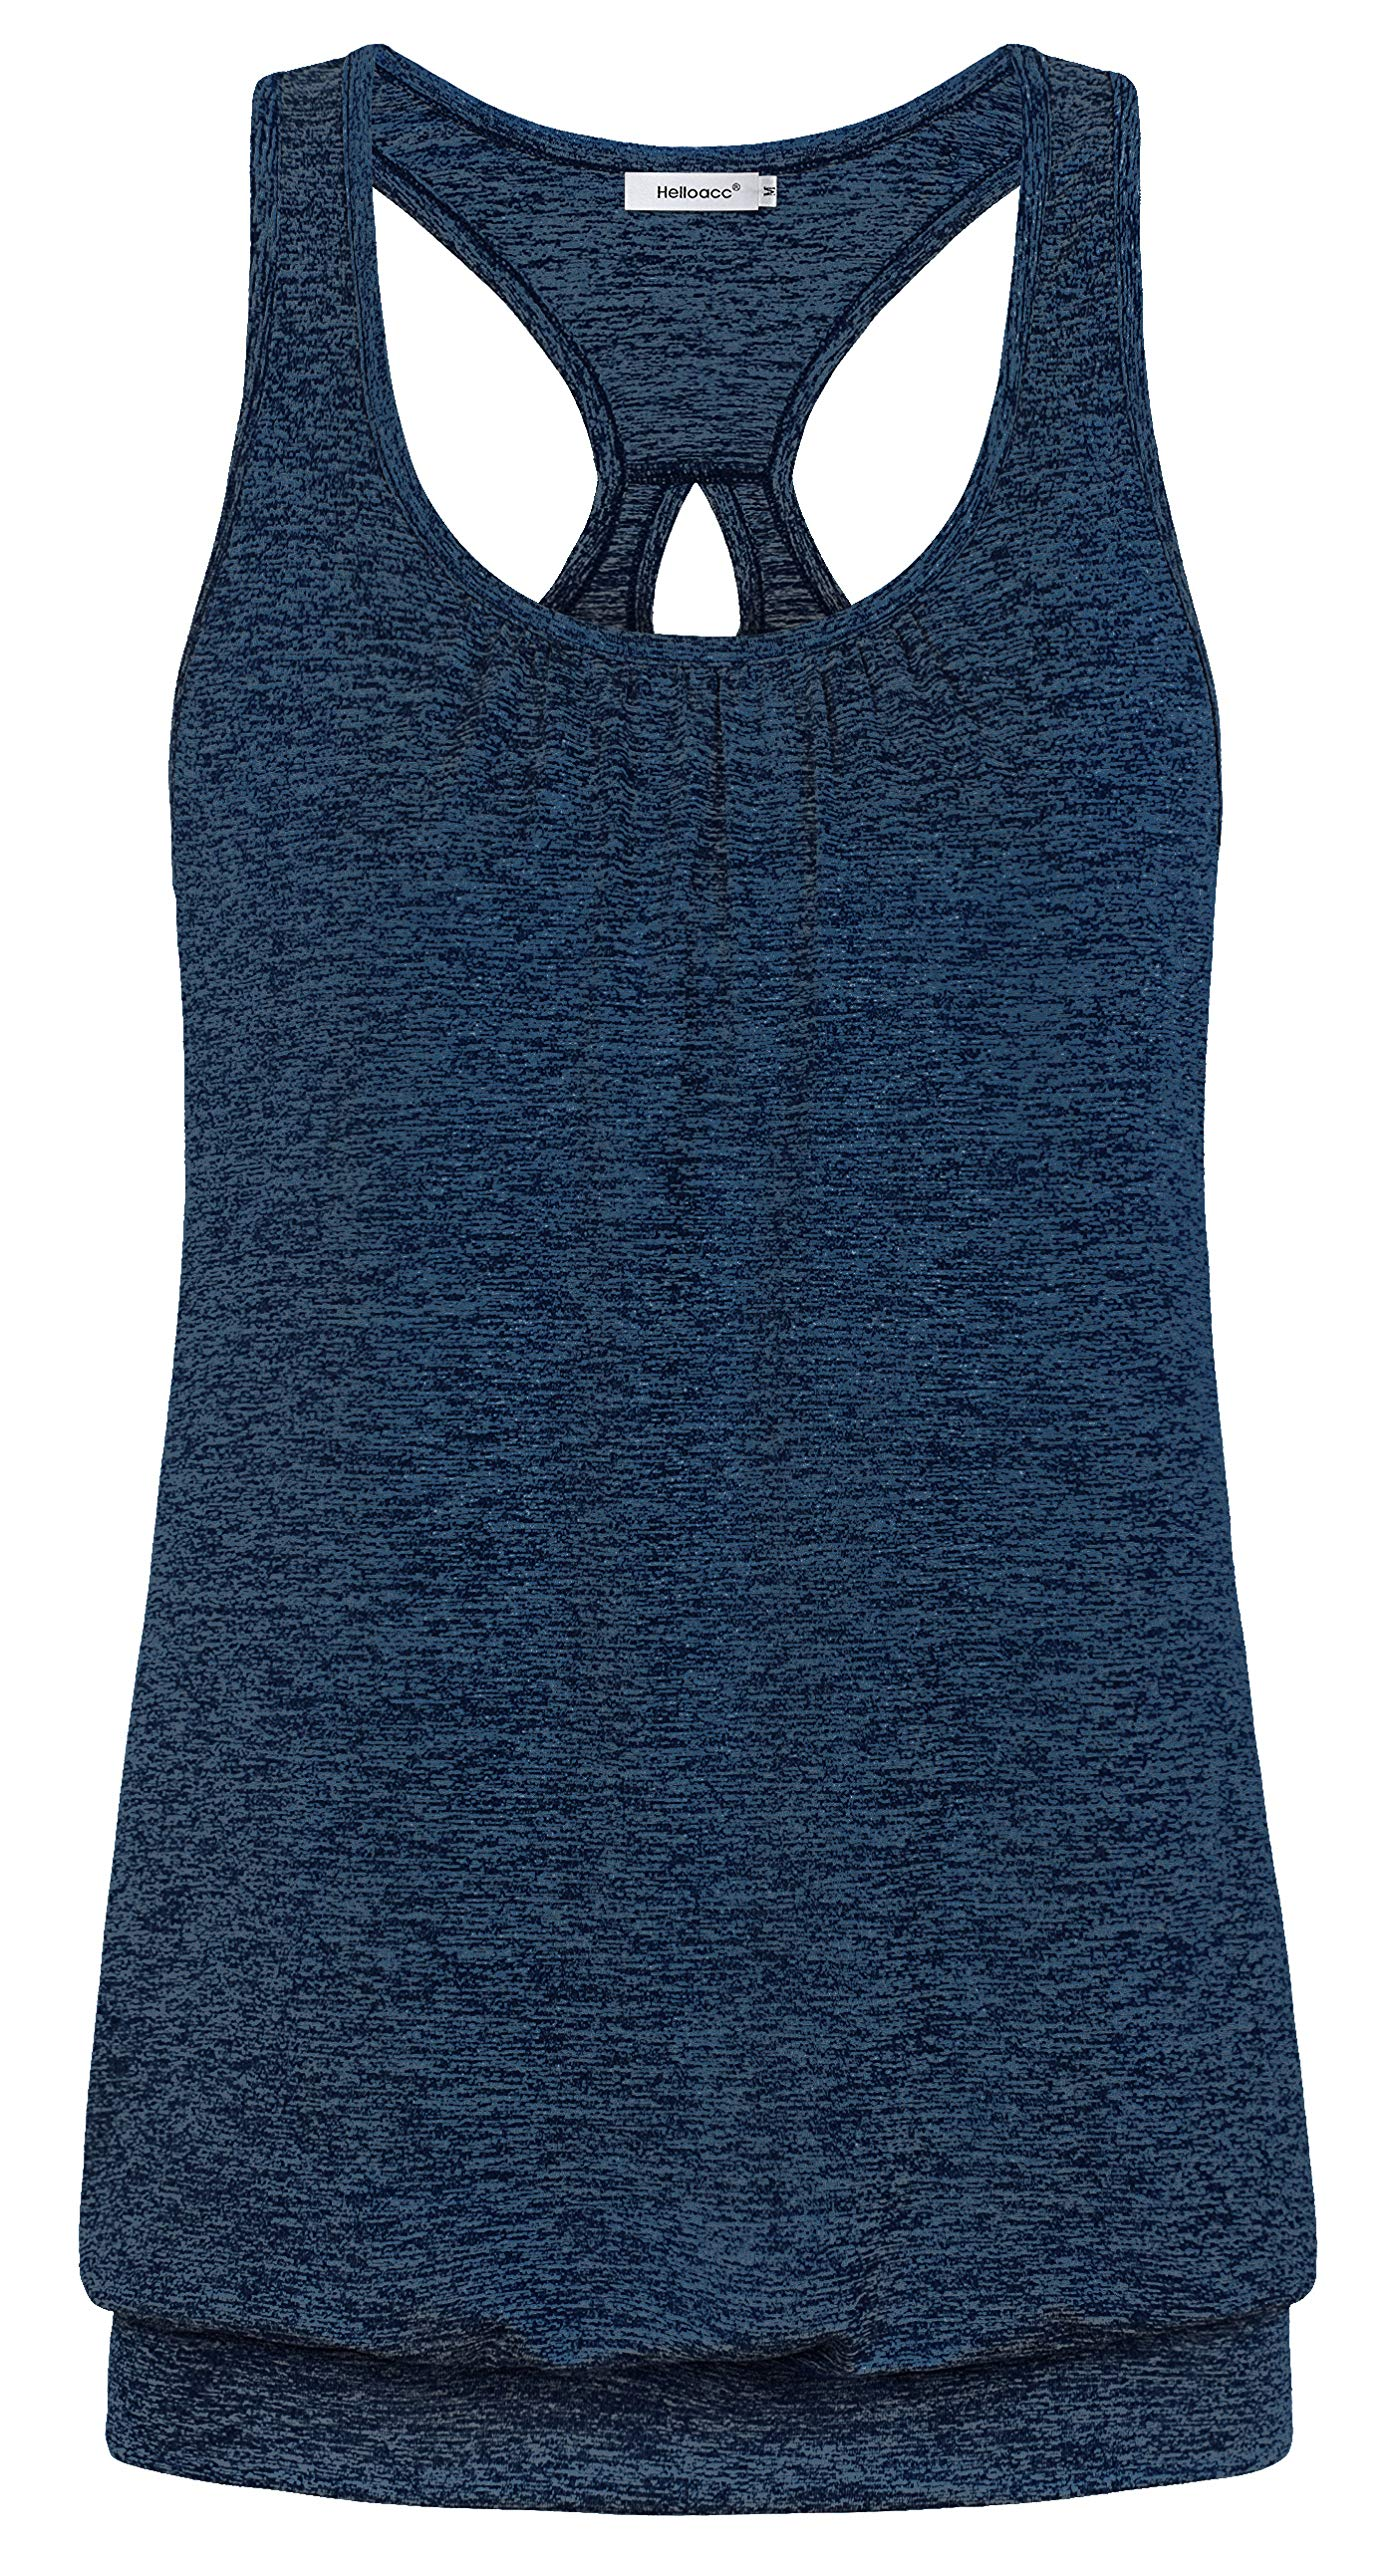 Helloacc Workout Tunics for Women Pilates Shirts Loose Funny Petite Size Modest Clothes Yoga T Shirt Embellished Moisture Wicking Tank Tops for Women Dressy Camisole Fashionable Razor Back Navy Blue M